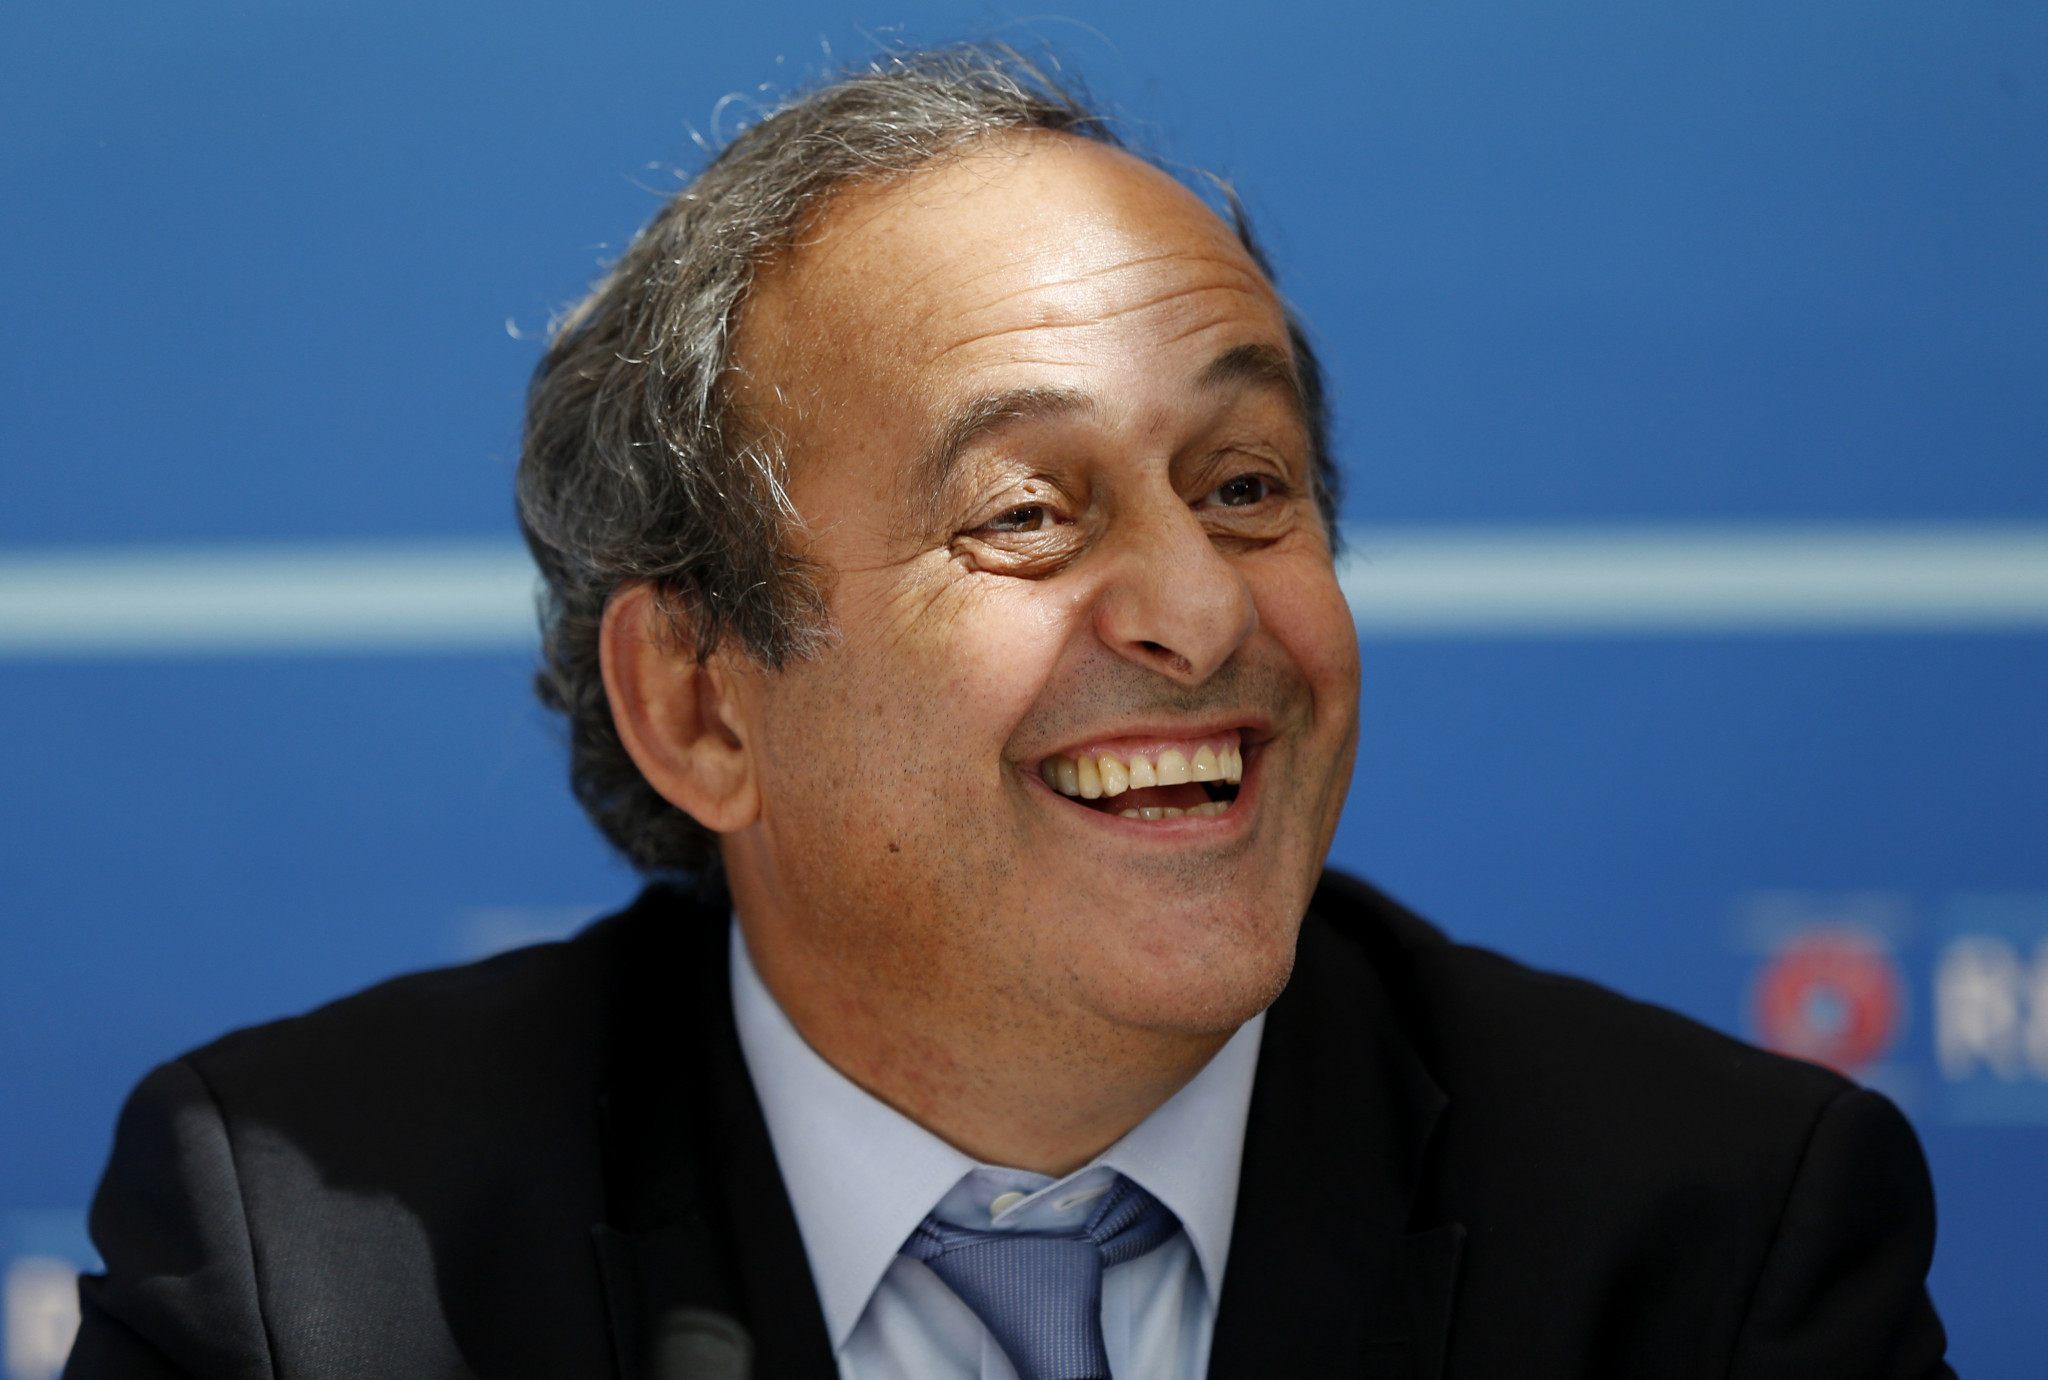 Platini to return to football but Blatter set to appear before judge over case that bought them down